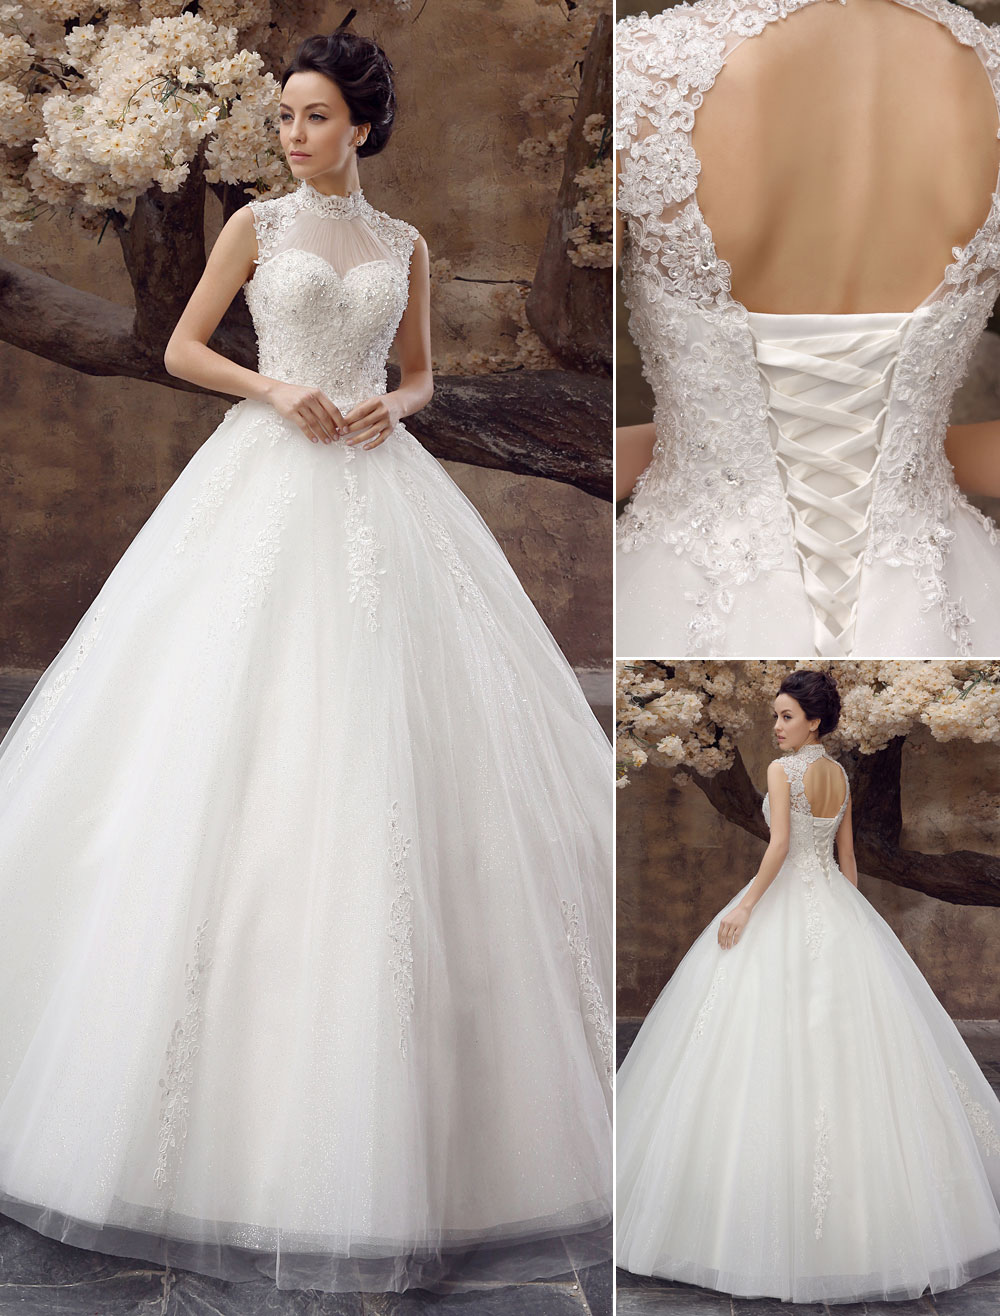 f41b6d9e8 Wedding Dresses Ball Gown Bridal Dress Lace Applique Open Back High Collar  Sequins Rhinestones Floor Length Bridal Dress - Milanoo.com